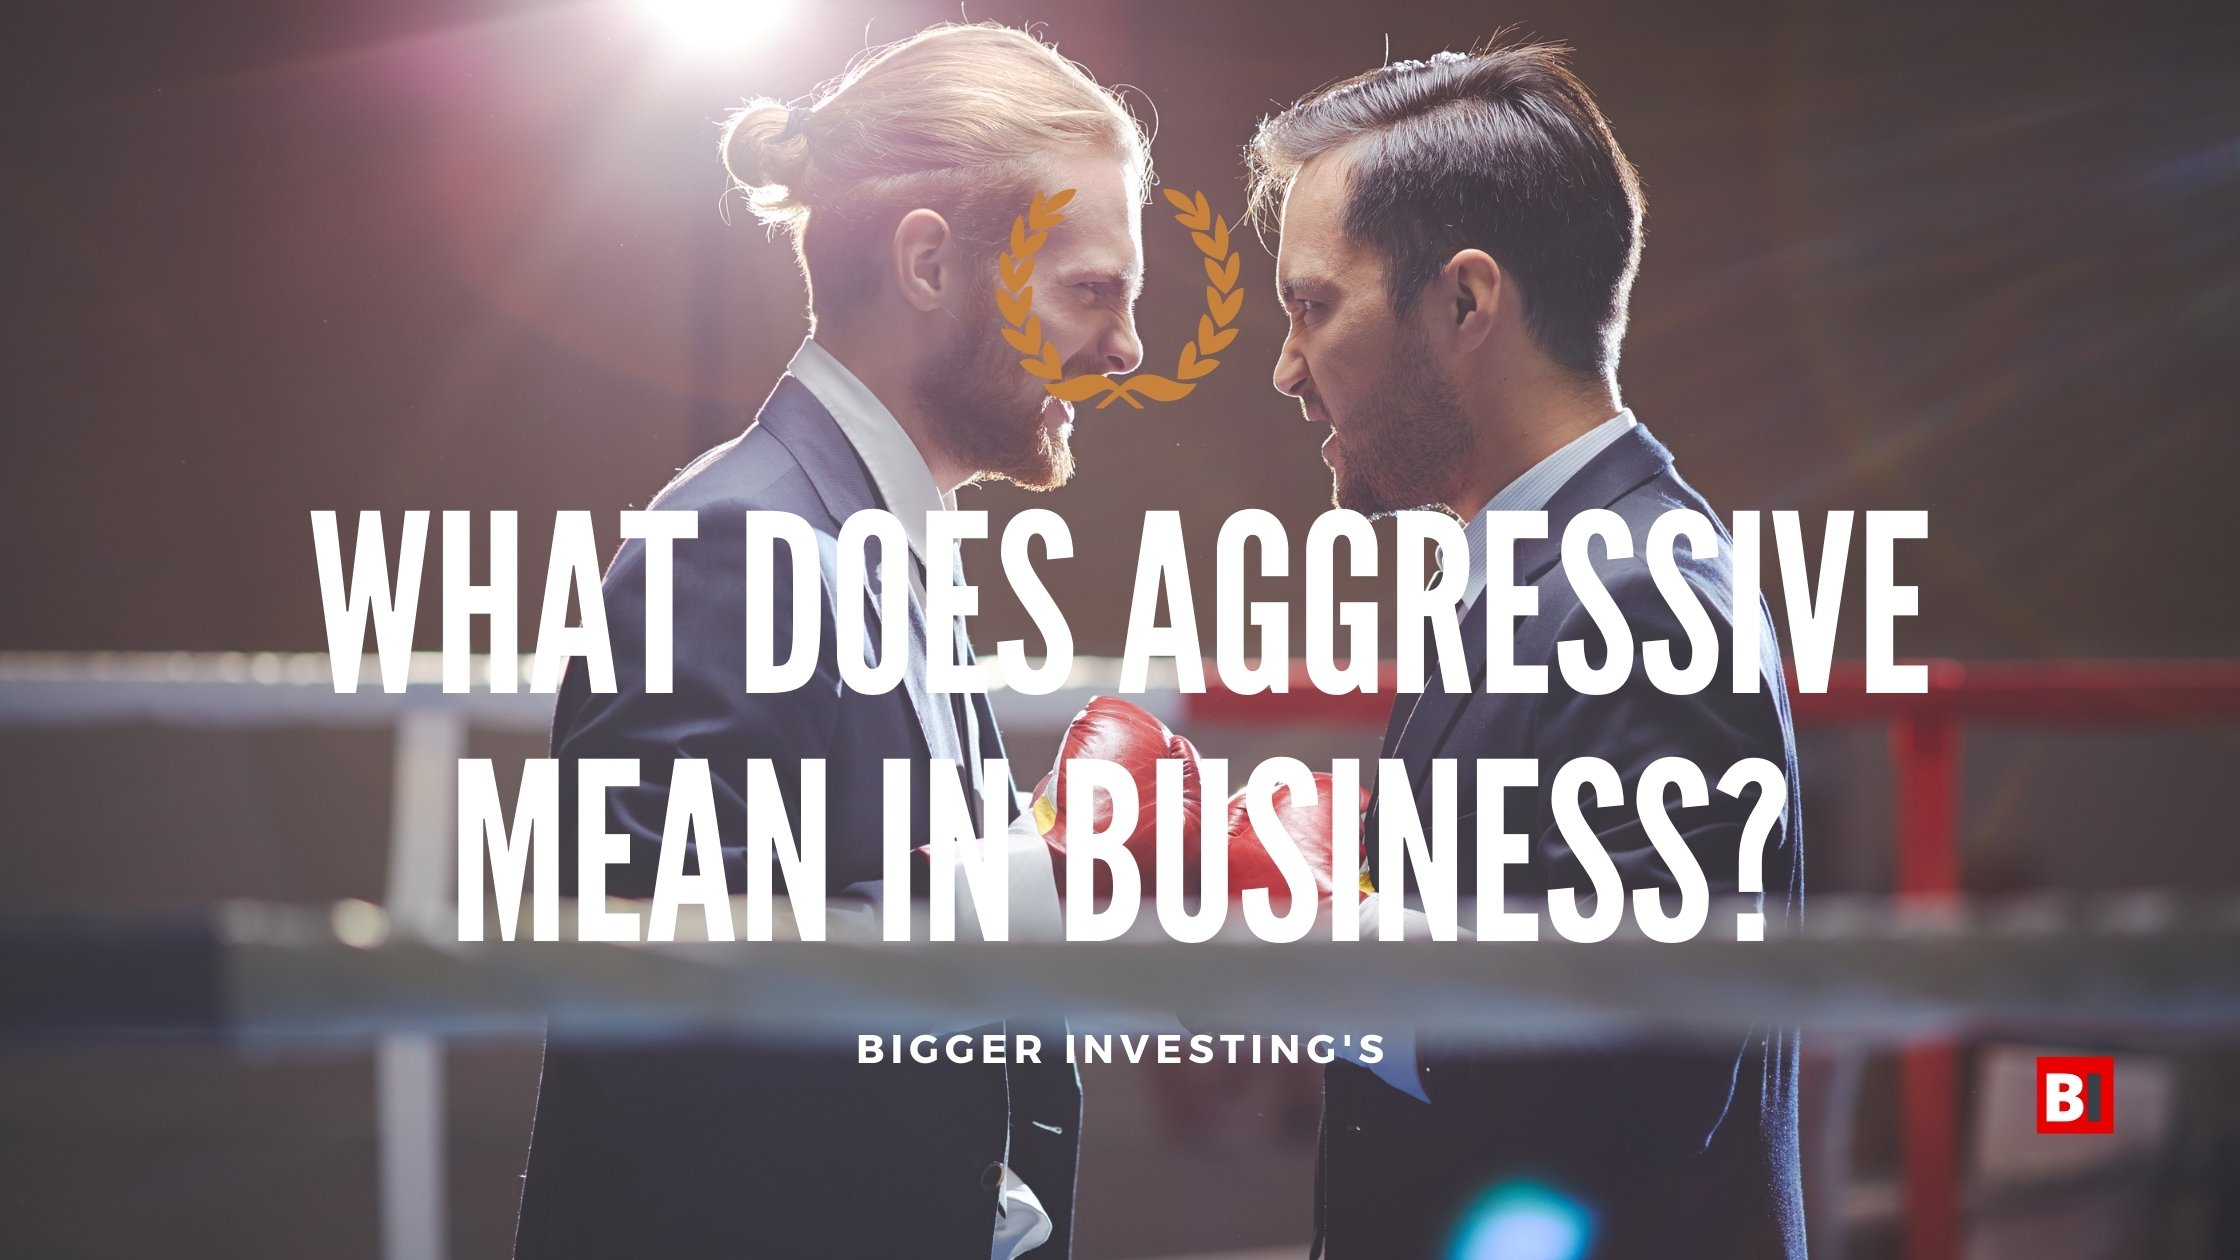 What Does Aggressive Mean in Business?